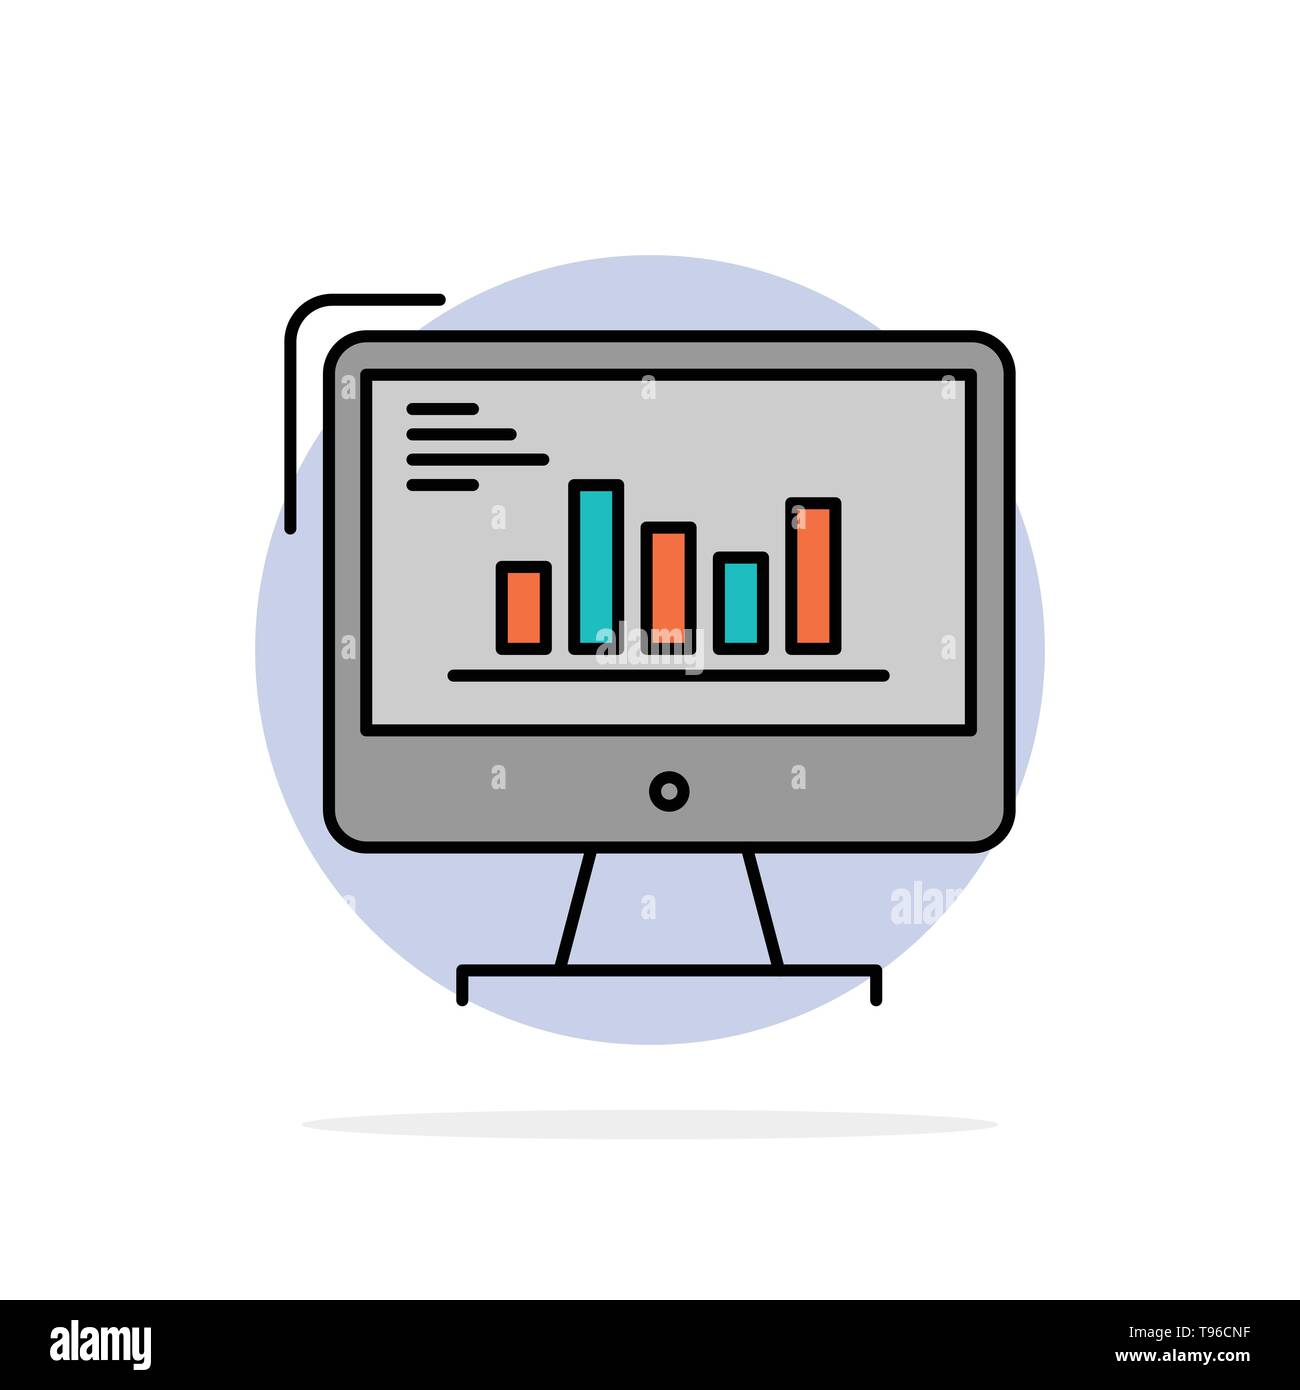 hight resolution of chart analytics business computer diagram marketing trends abstract circle background flat color icon